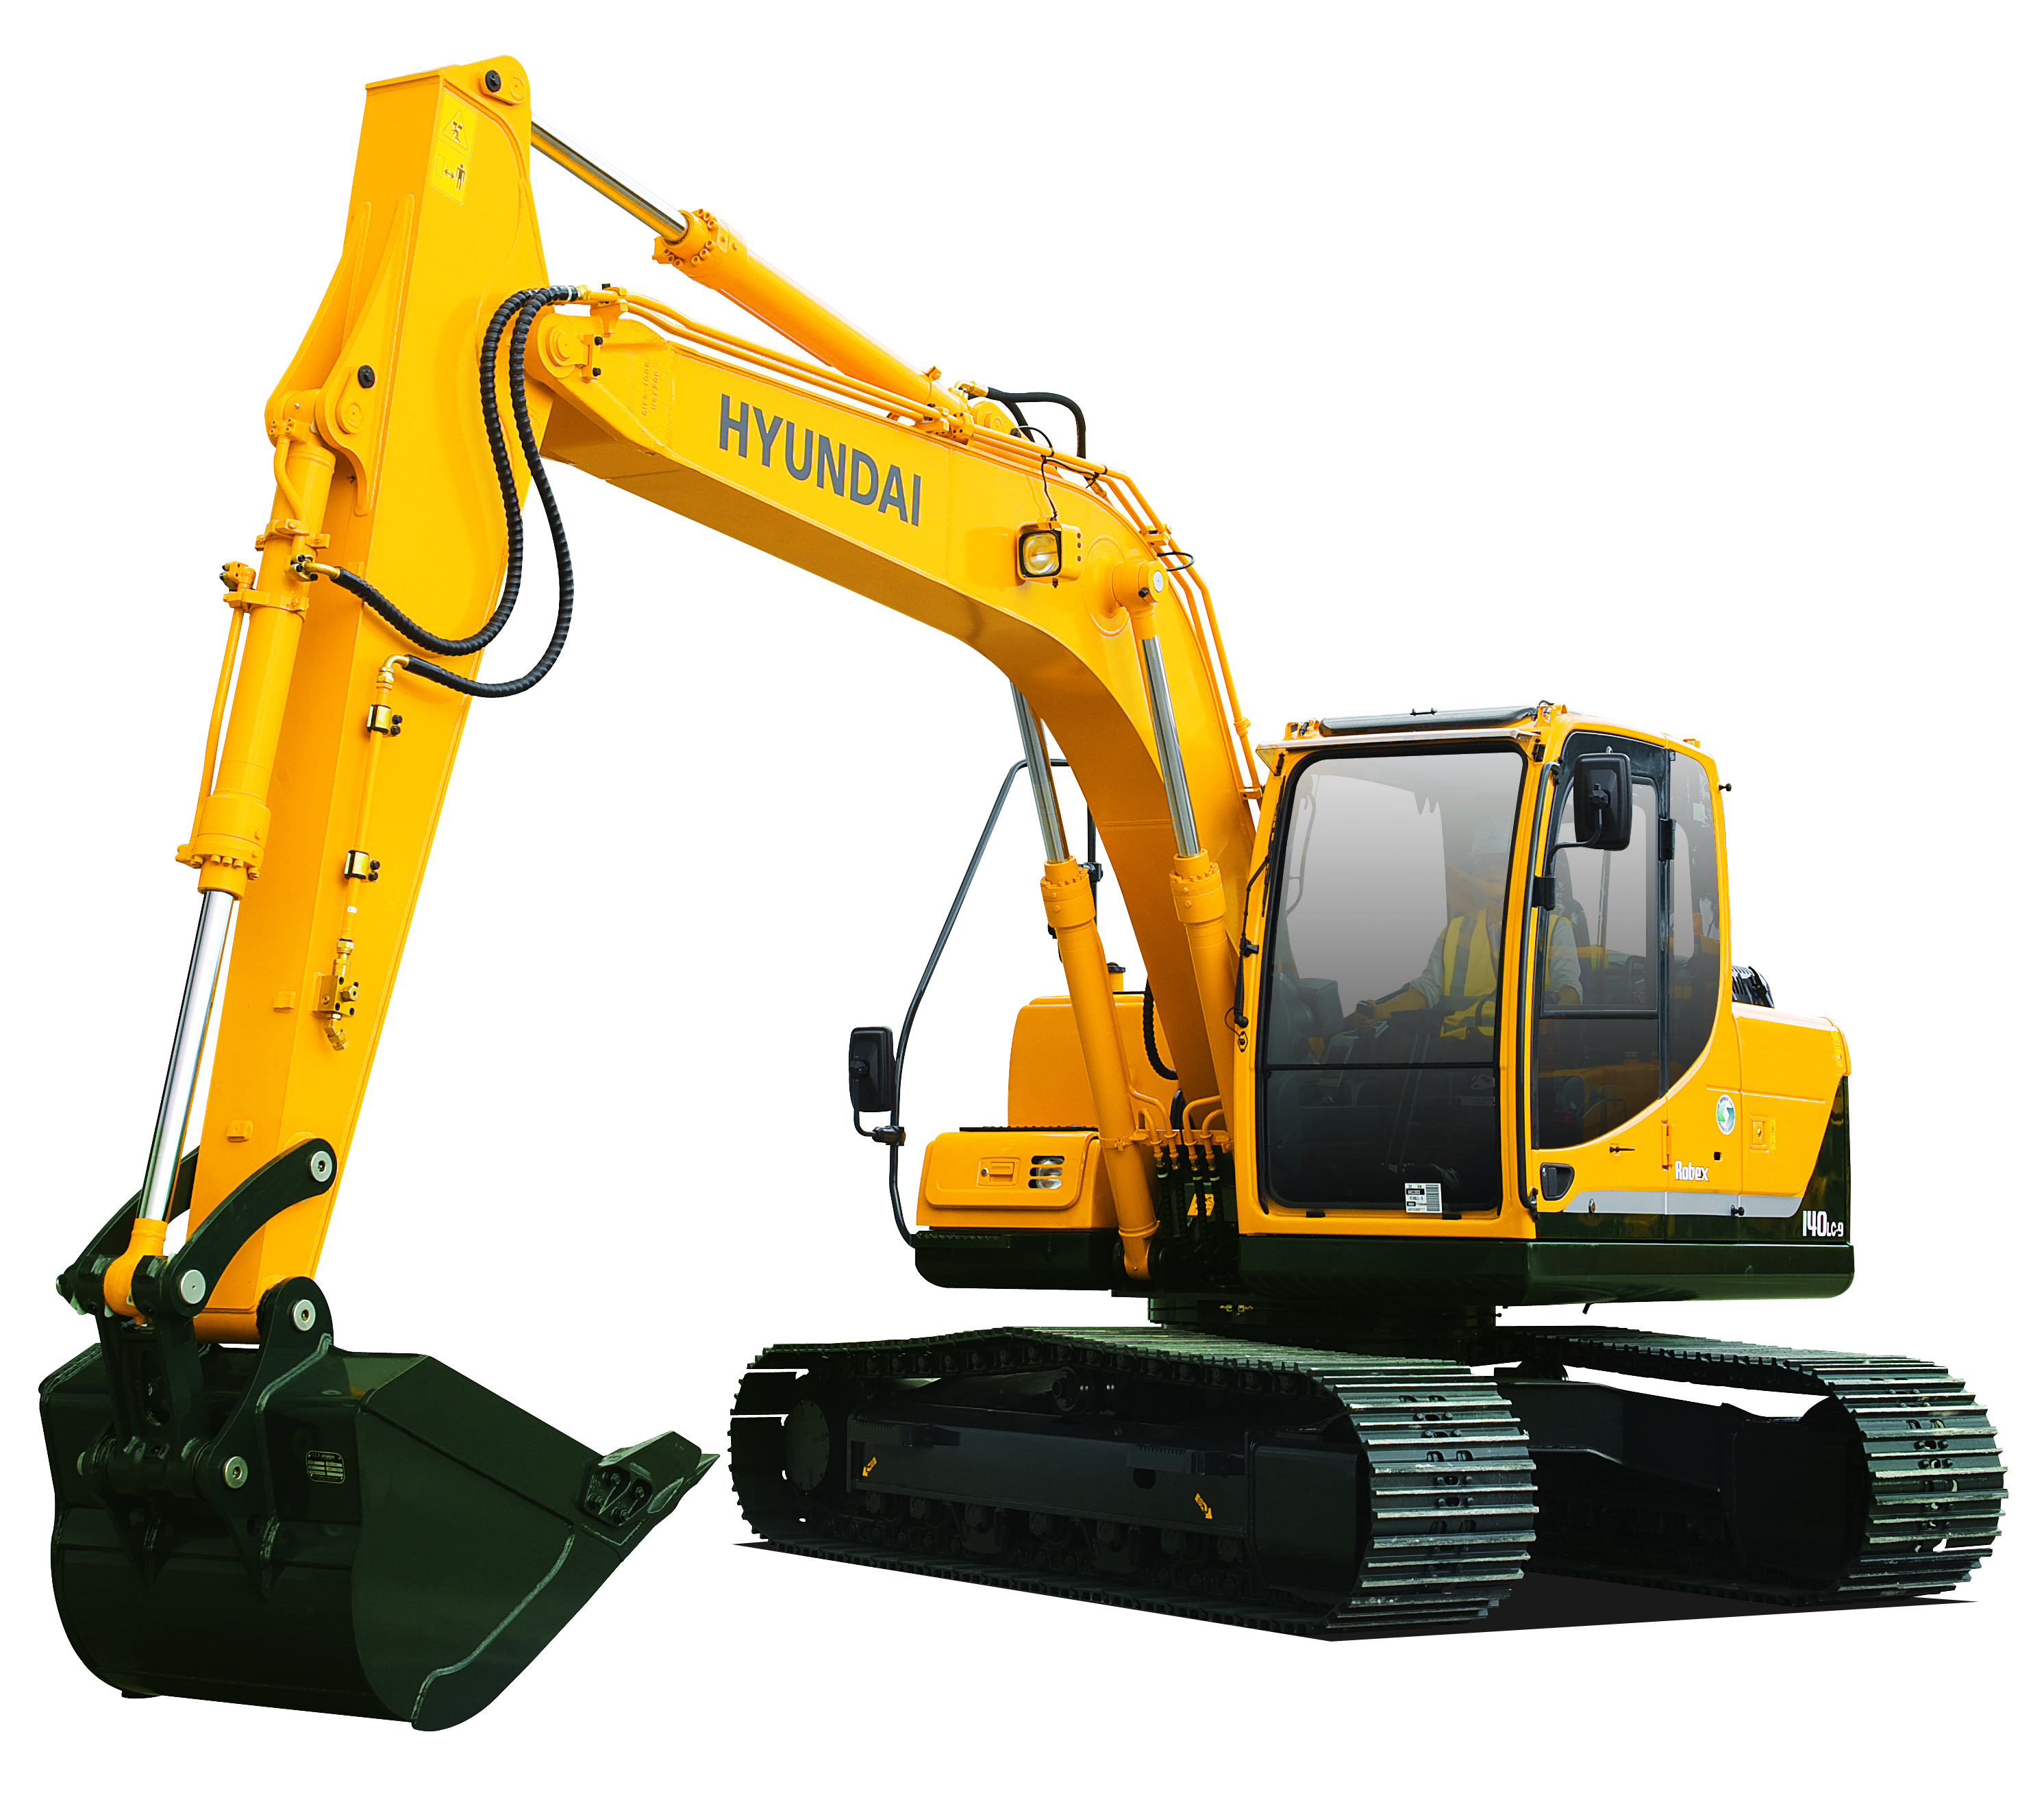 Construction Equipment Images | Clipart Panda - Free